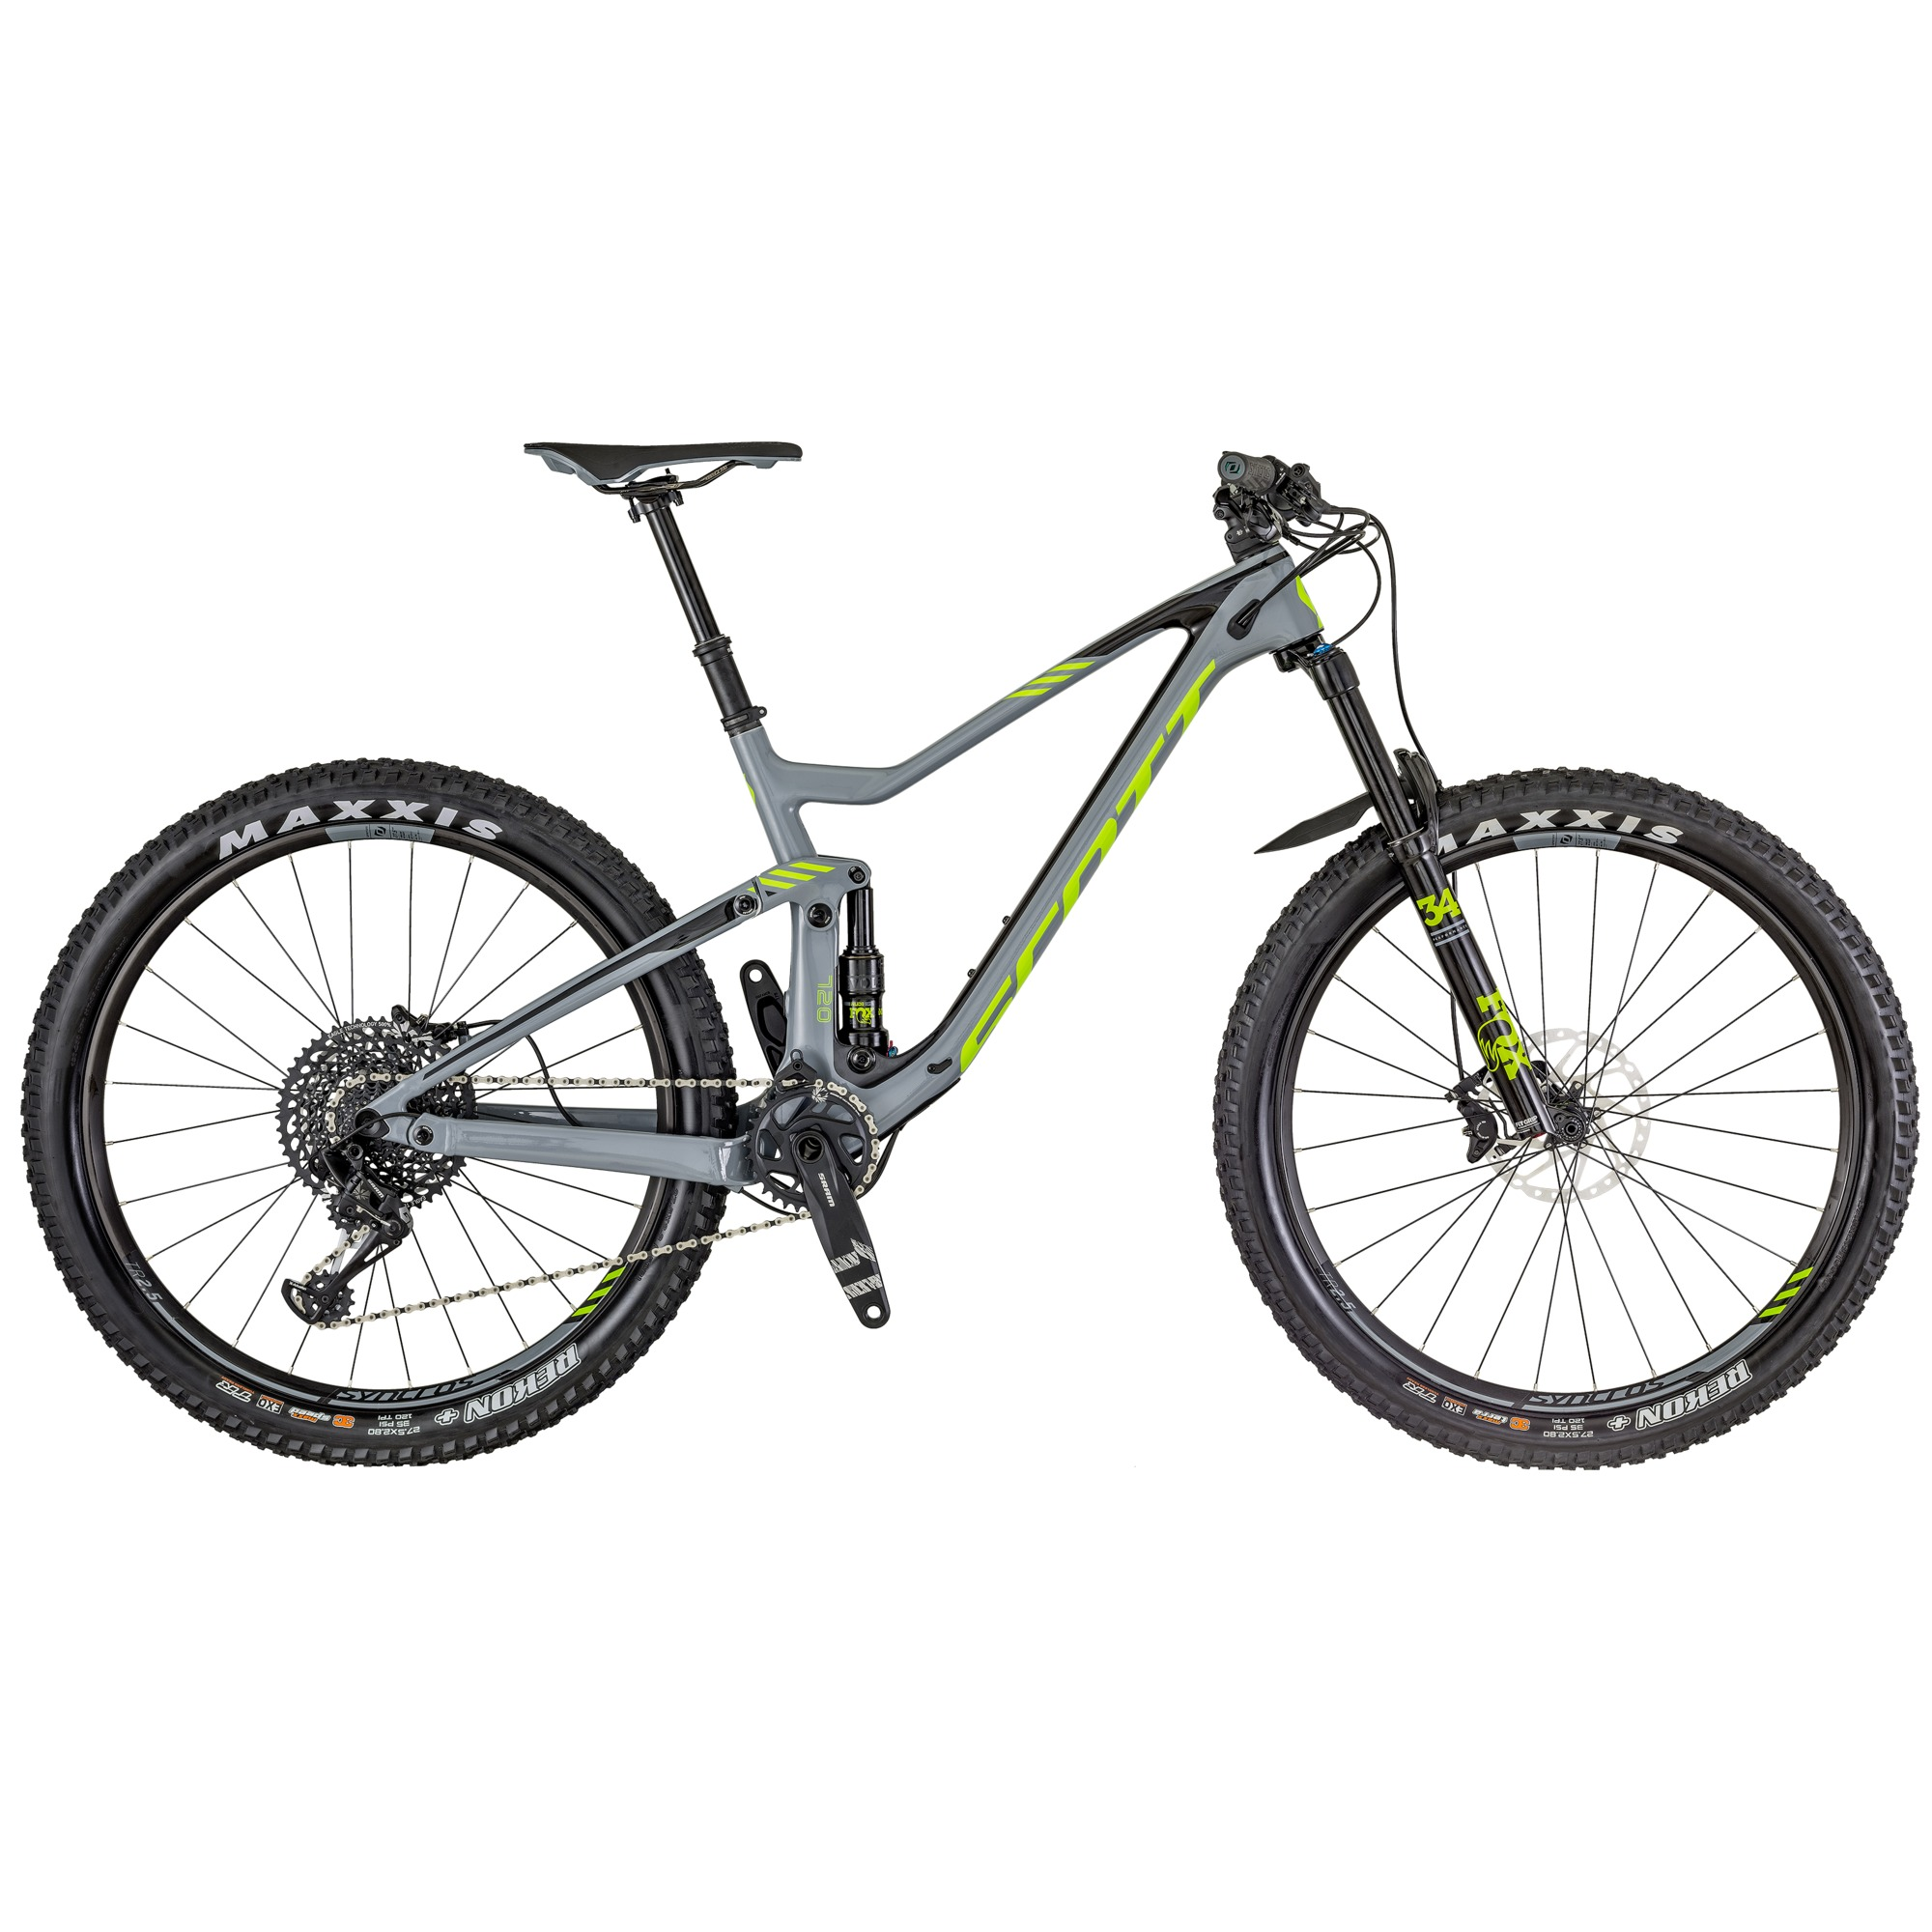 SCOTT Genius 720 Bike L - Zweirad Homann